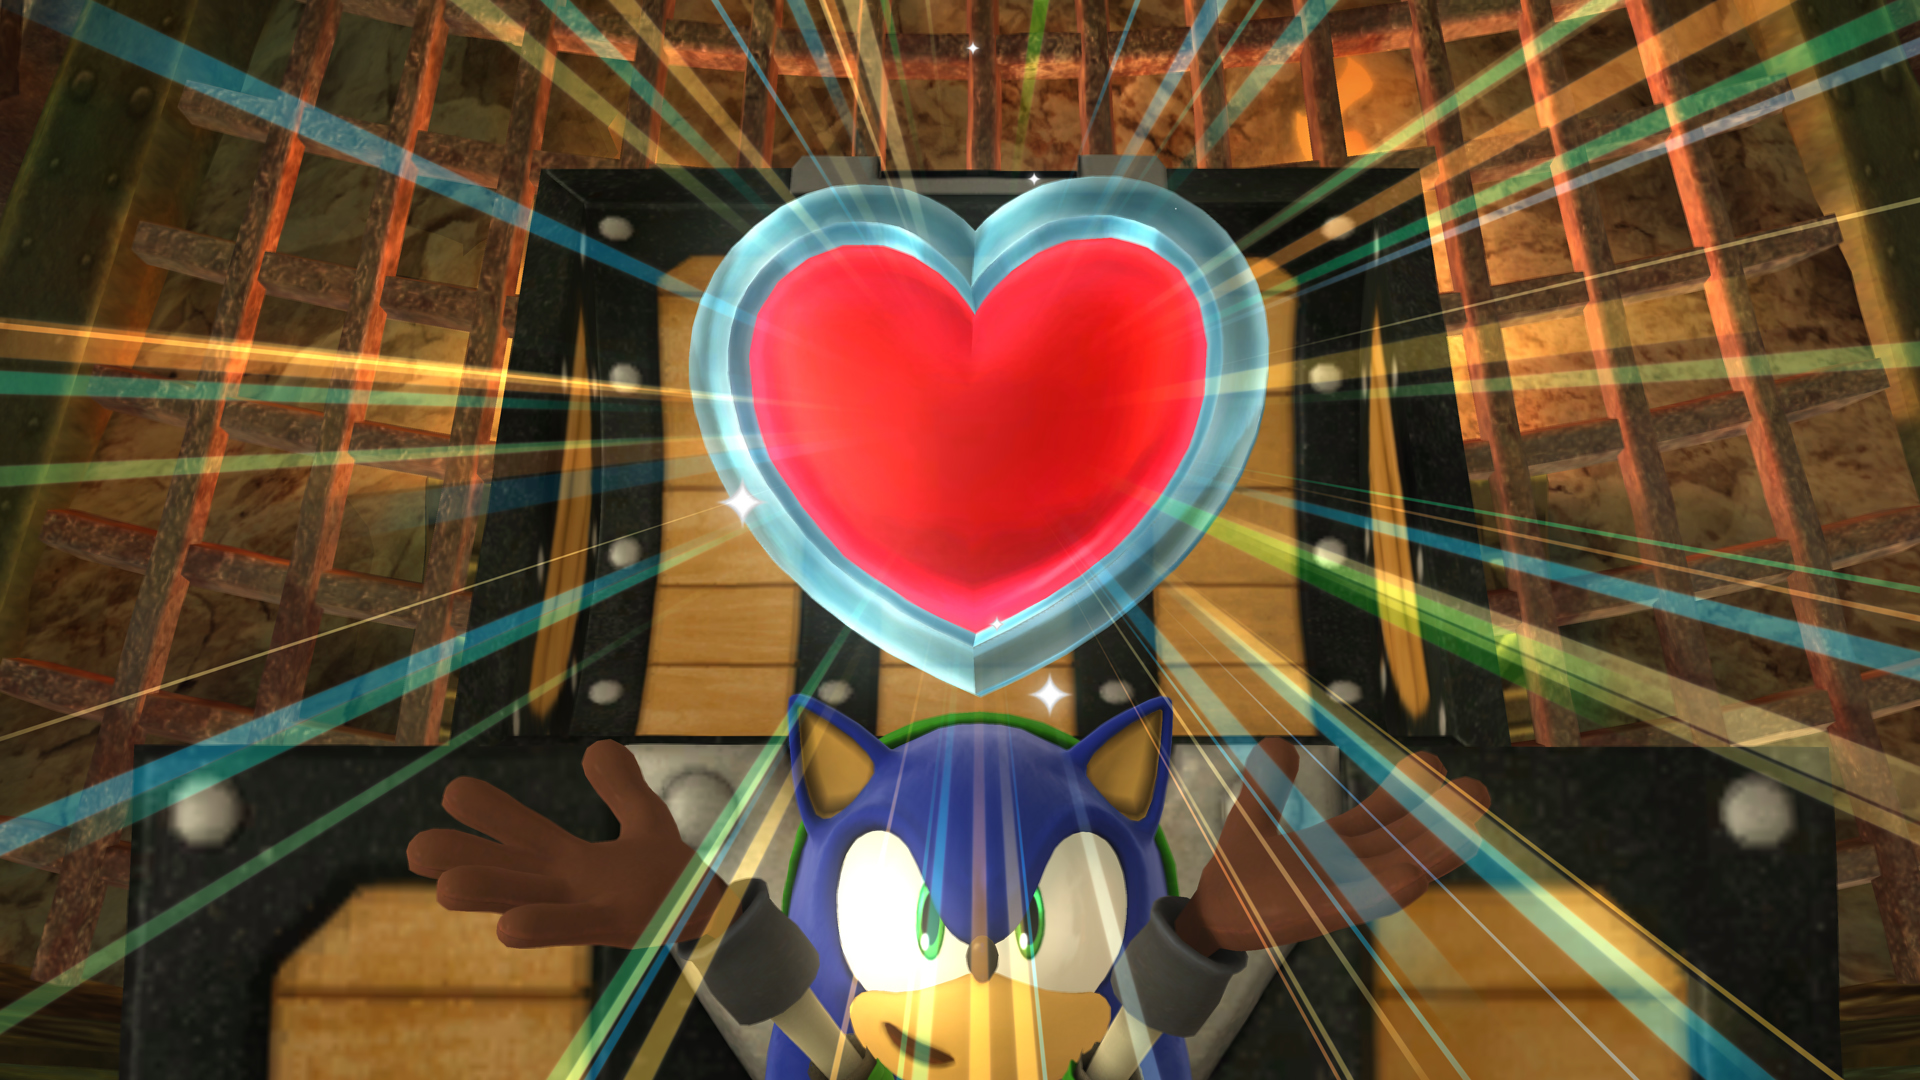 Sonic heart container